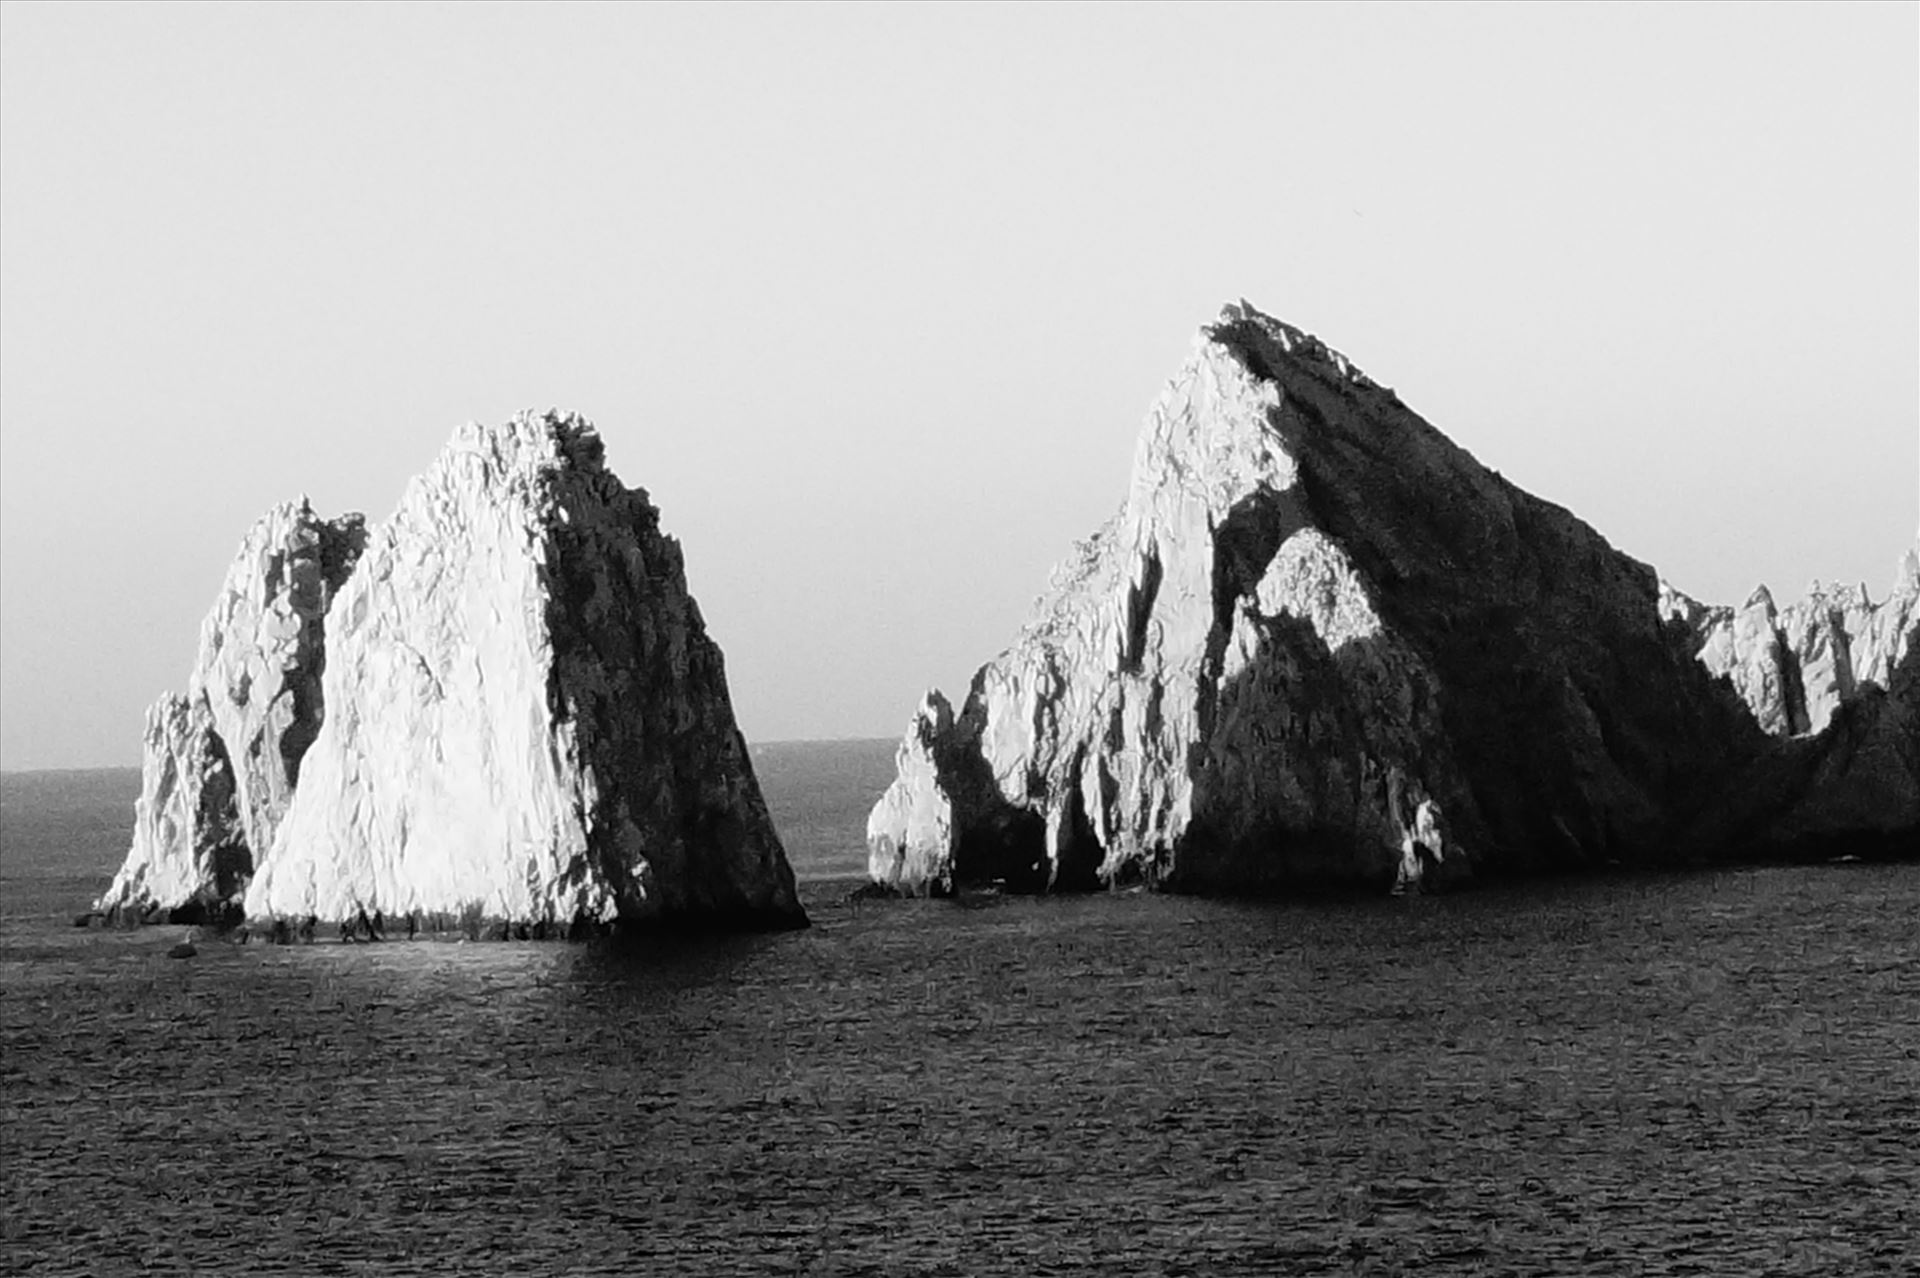 el Arco - Monochrome - Dawn sun lights up el Arco, Cabo San Lucas, Mexico by 4 Hemispheres Photography